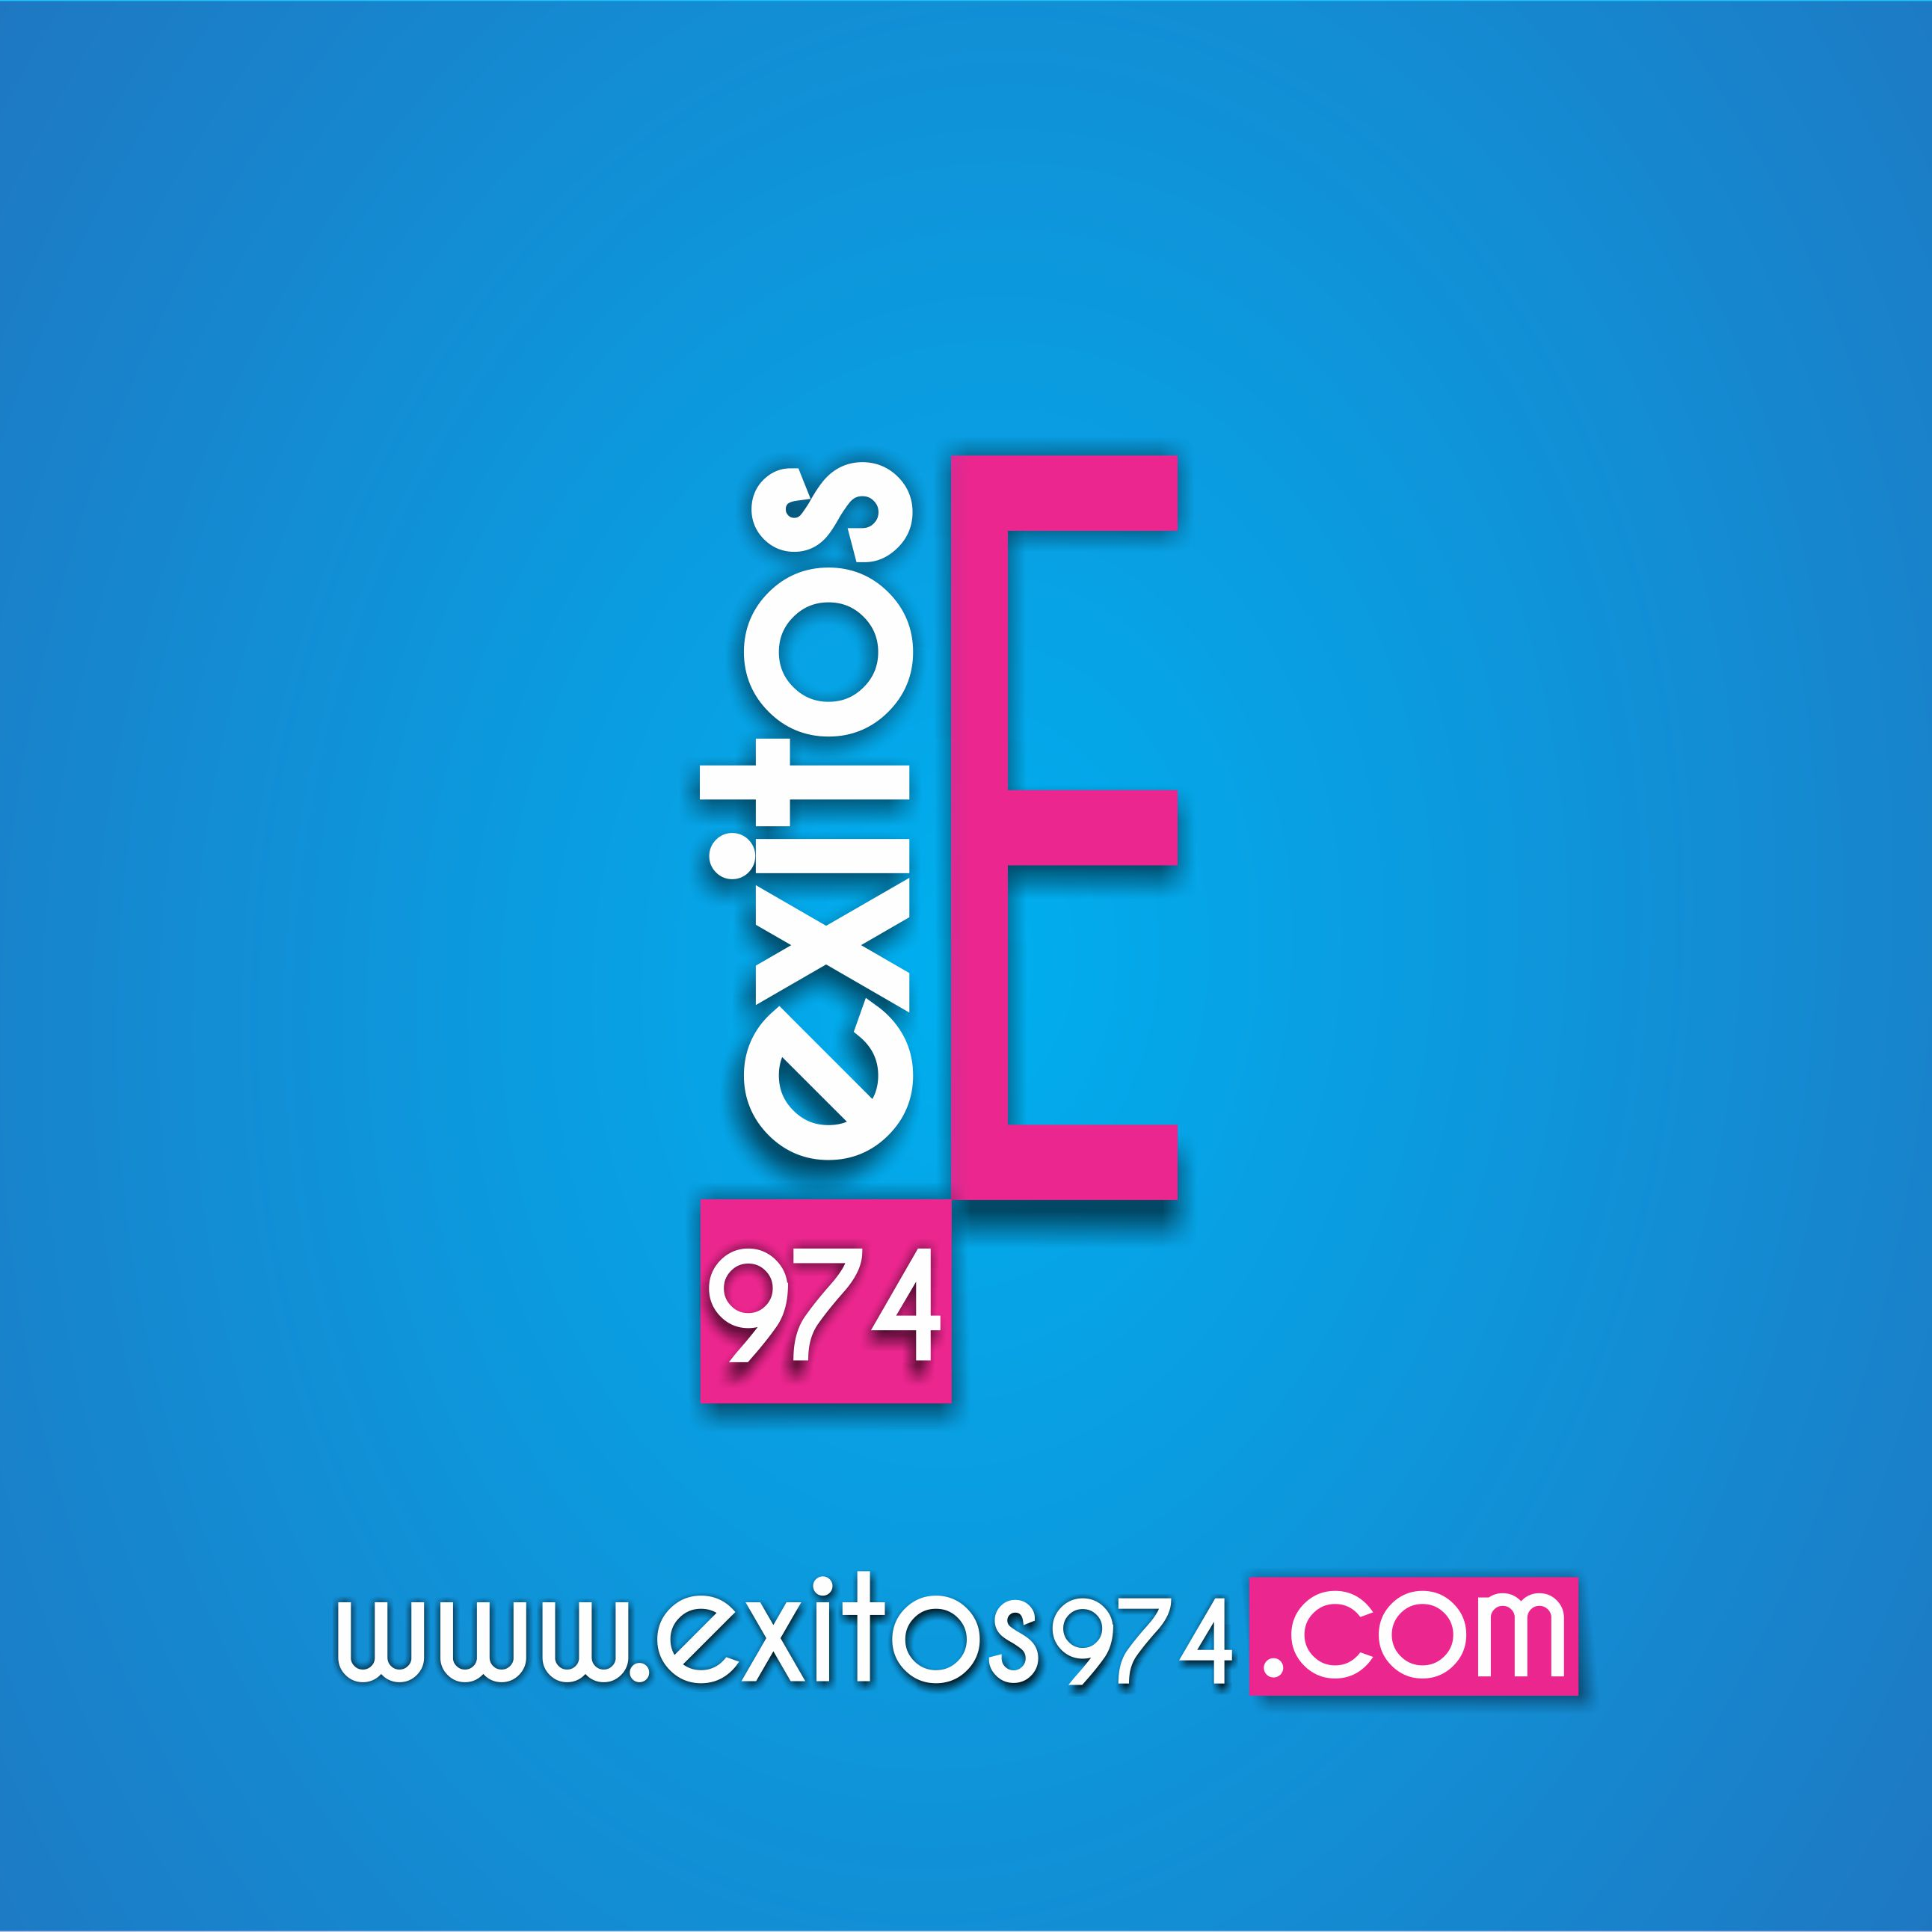 Radio Exitos 974